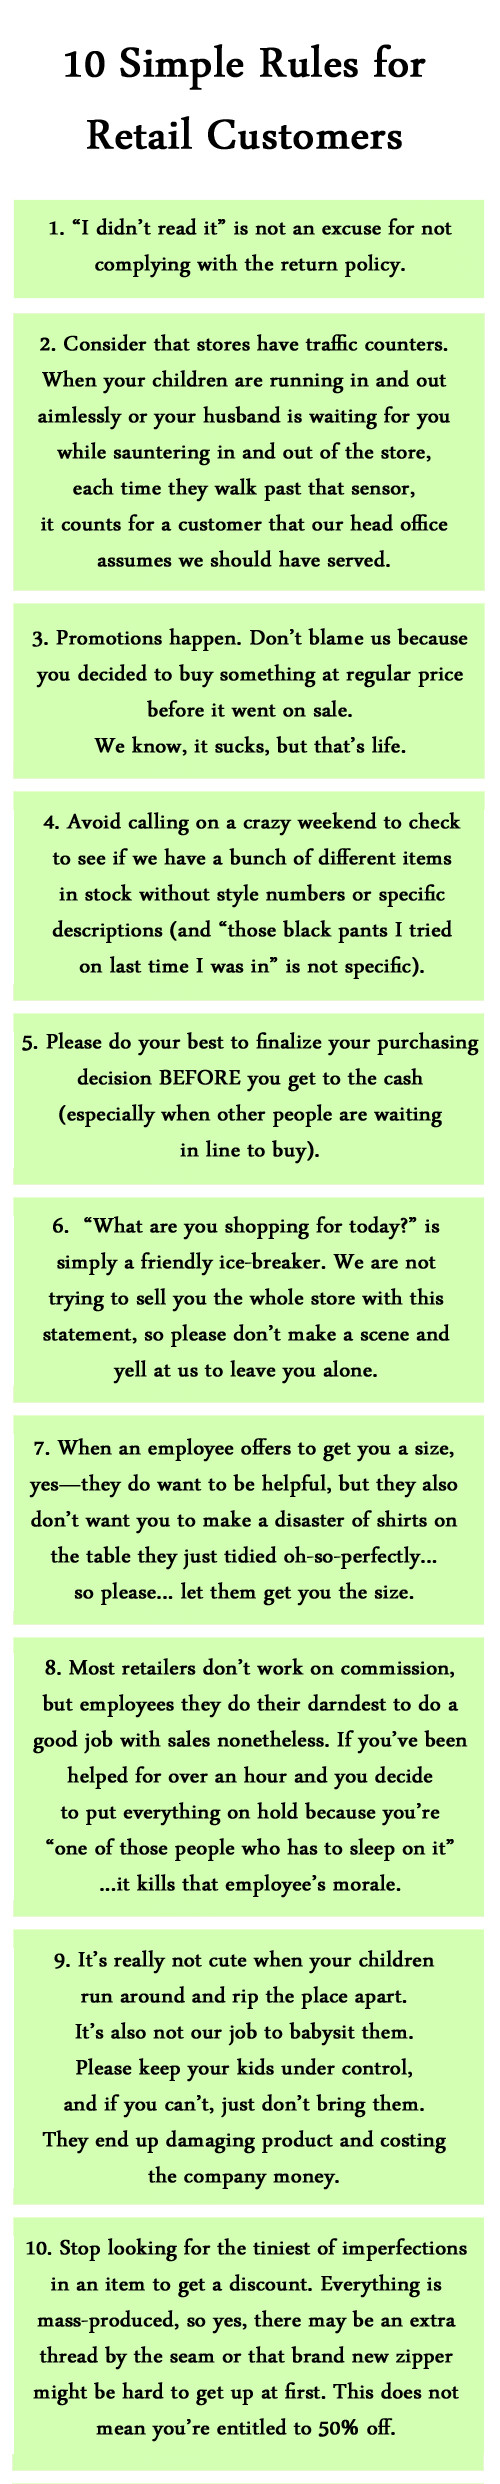 10 Simple Rules for Retail Customers